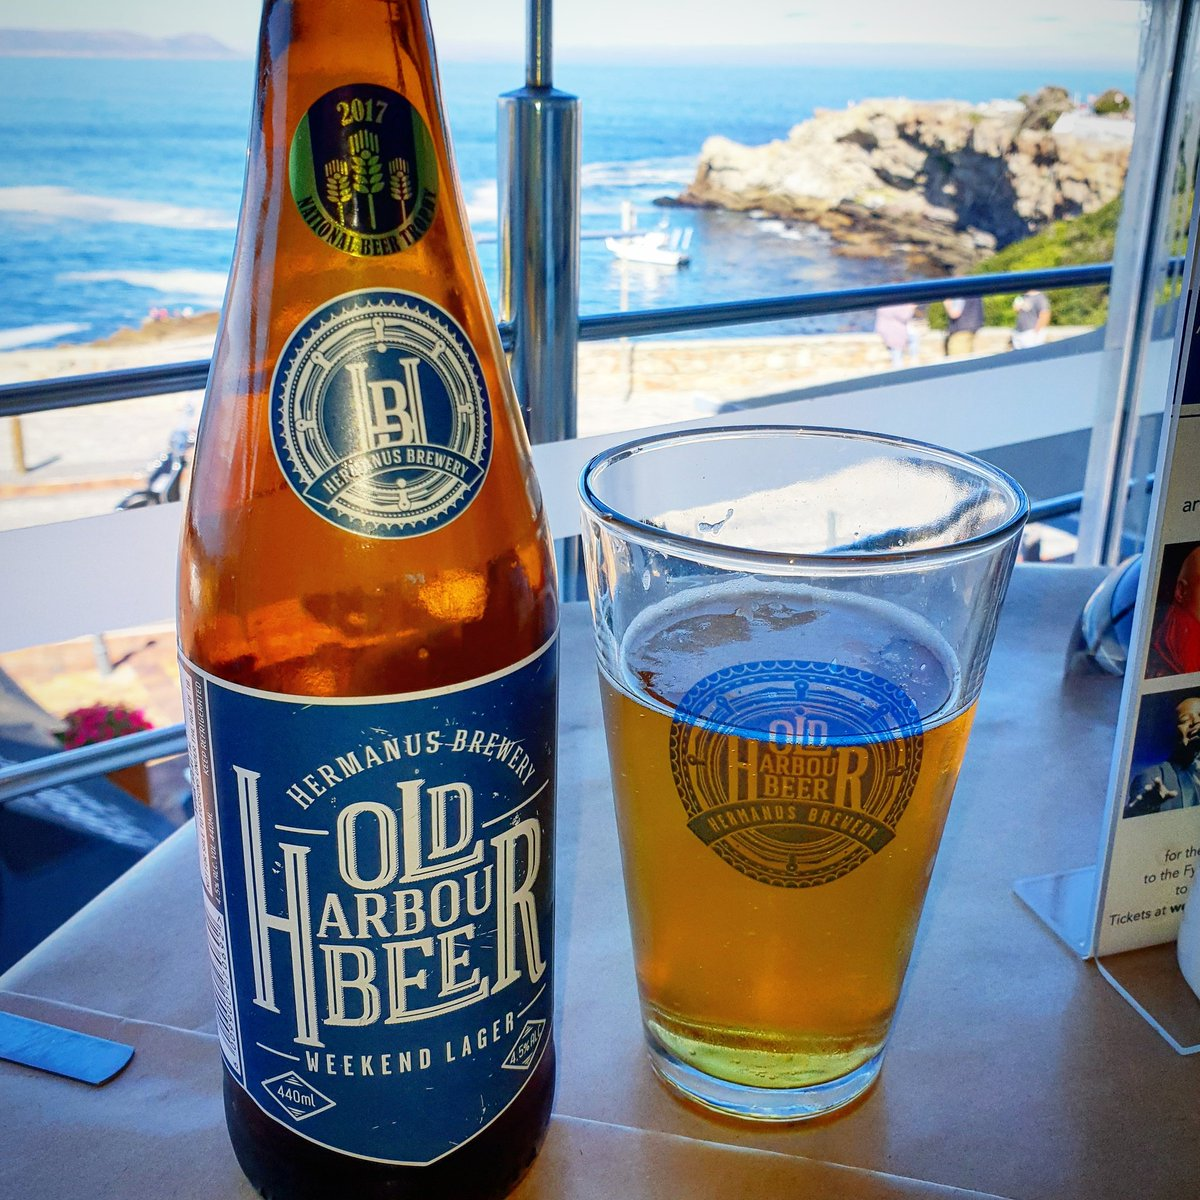 Great way to end a great weekend away  #Cheers #CraftBeer #Hermanus #HermanusBrewery #SundayLunch #SundayFunday<br>http://pic.twitter.com/JsARDoQz0P